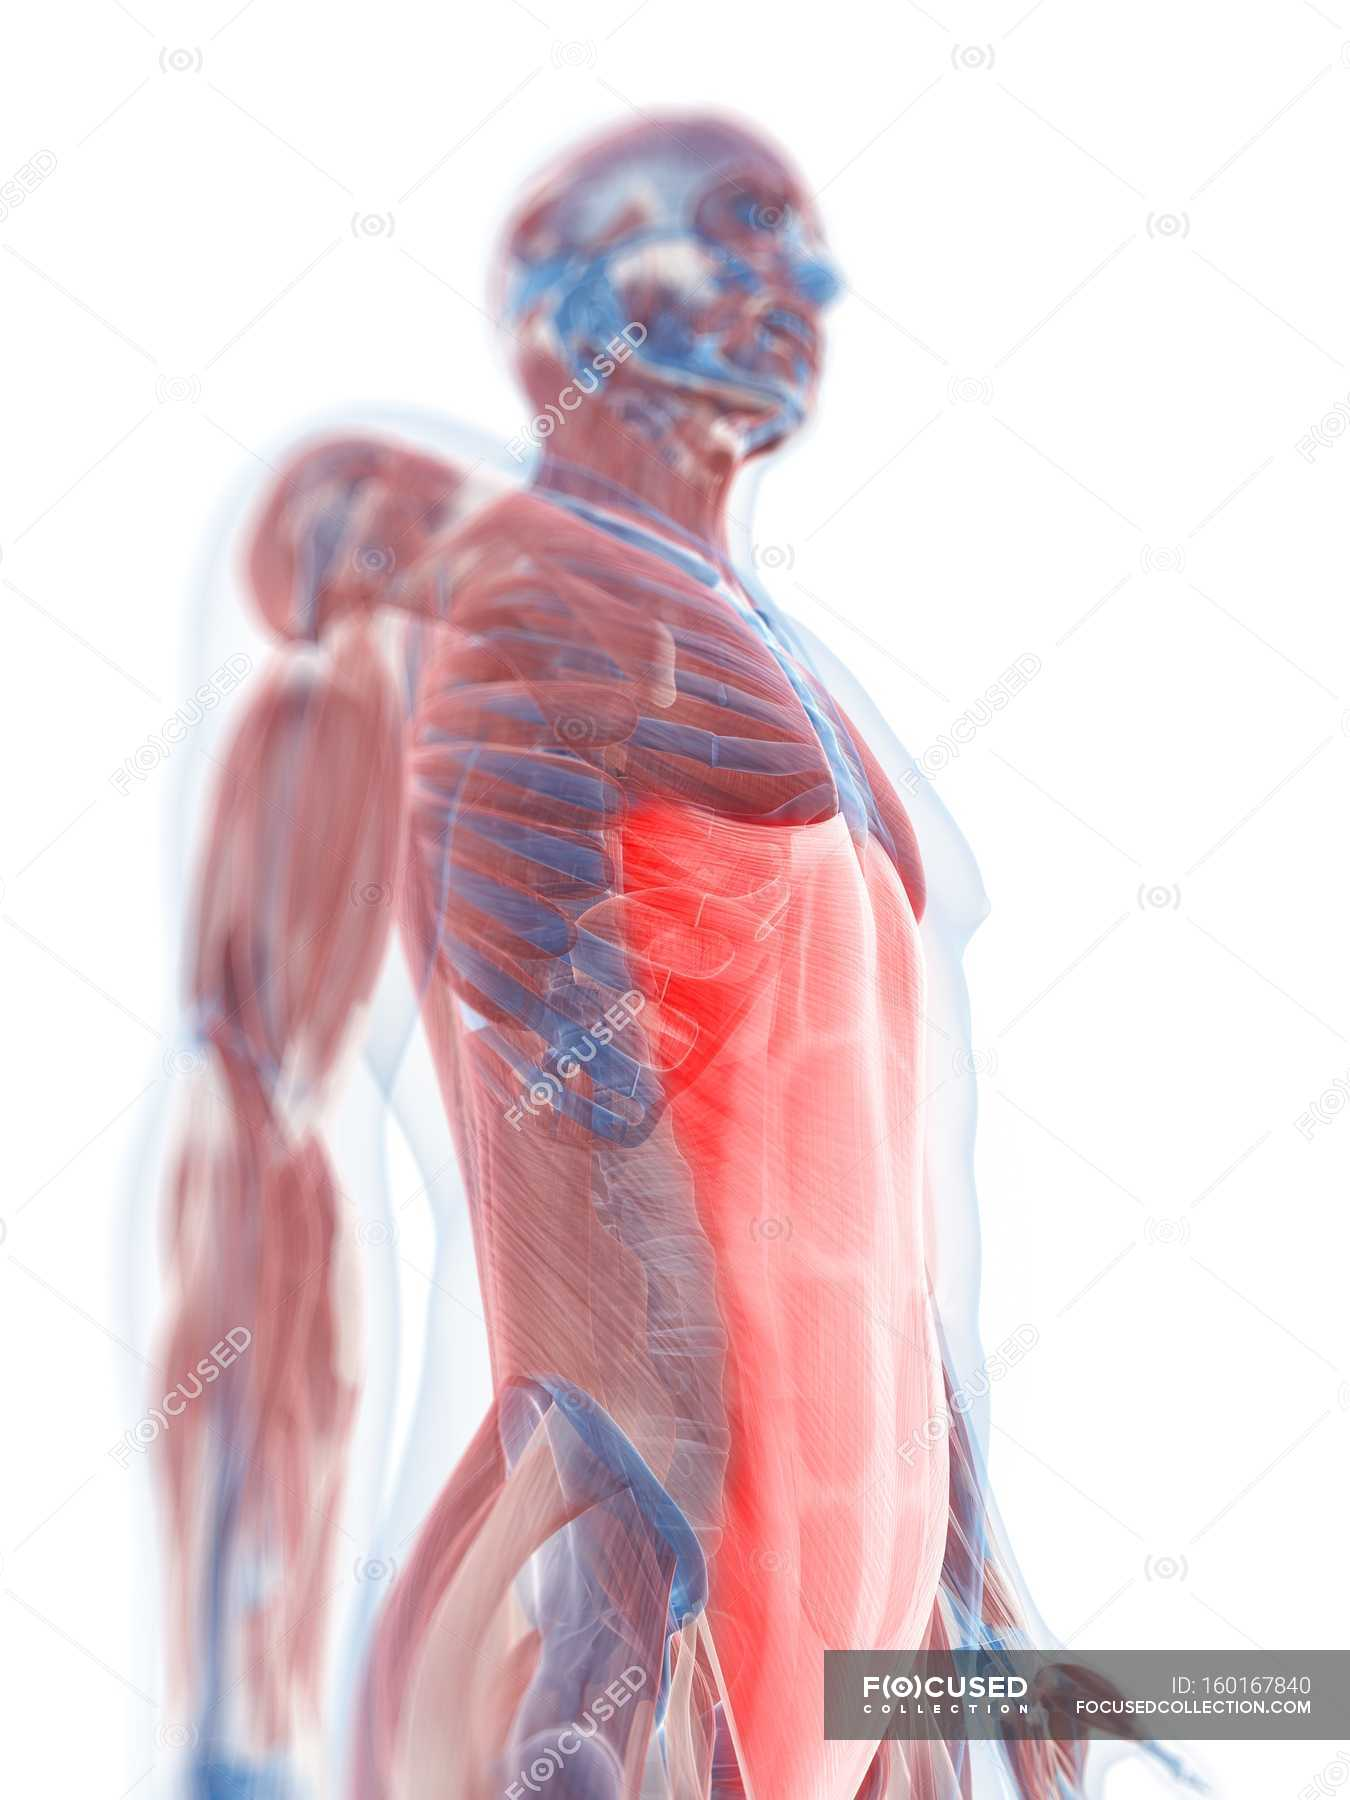 Rectus Abdominis Muscle Stock Photo 160167840